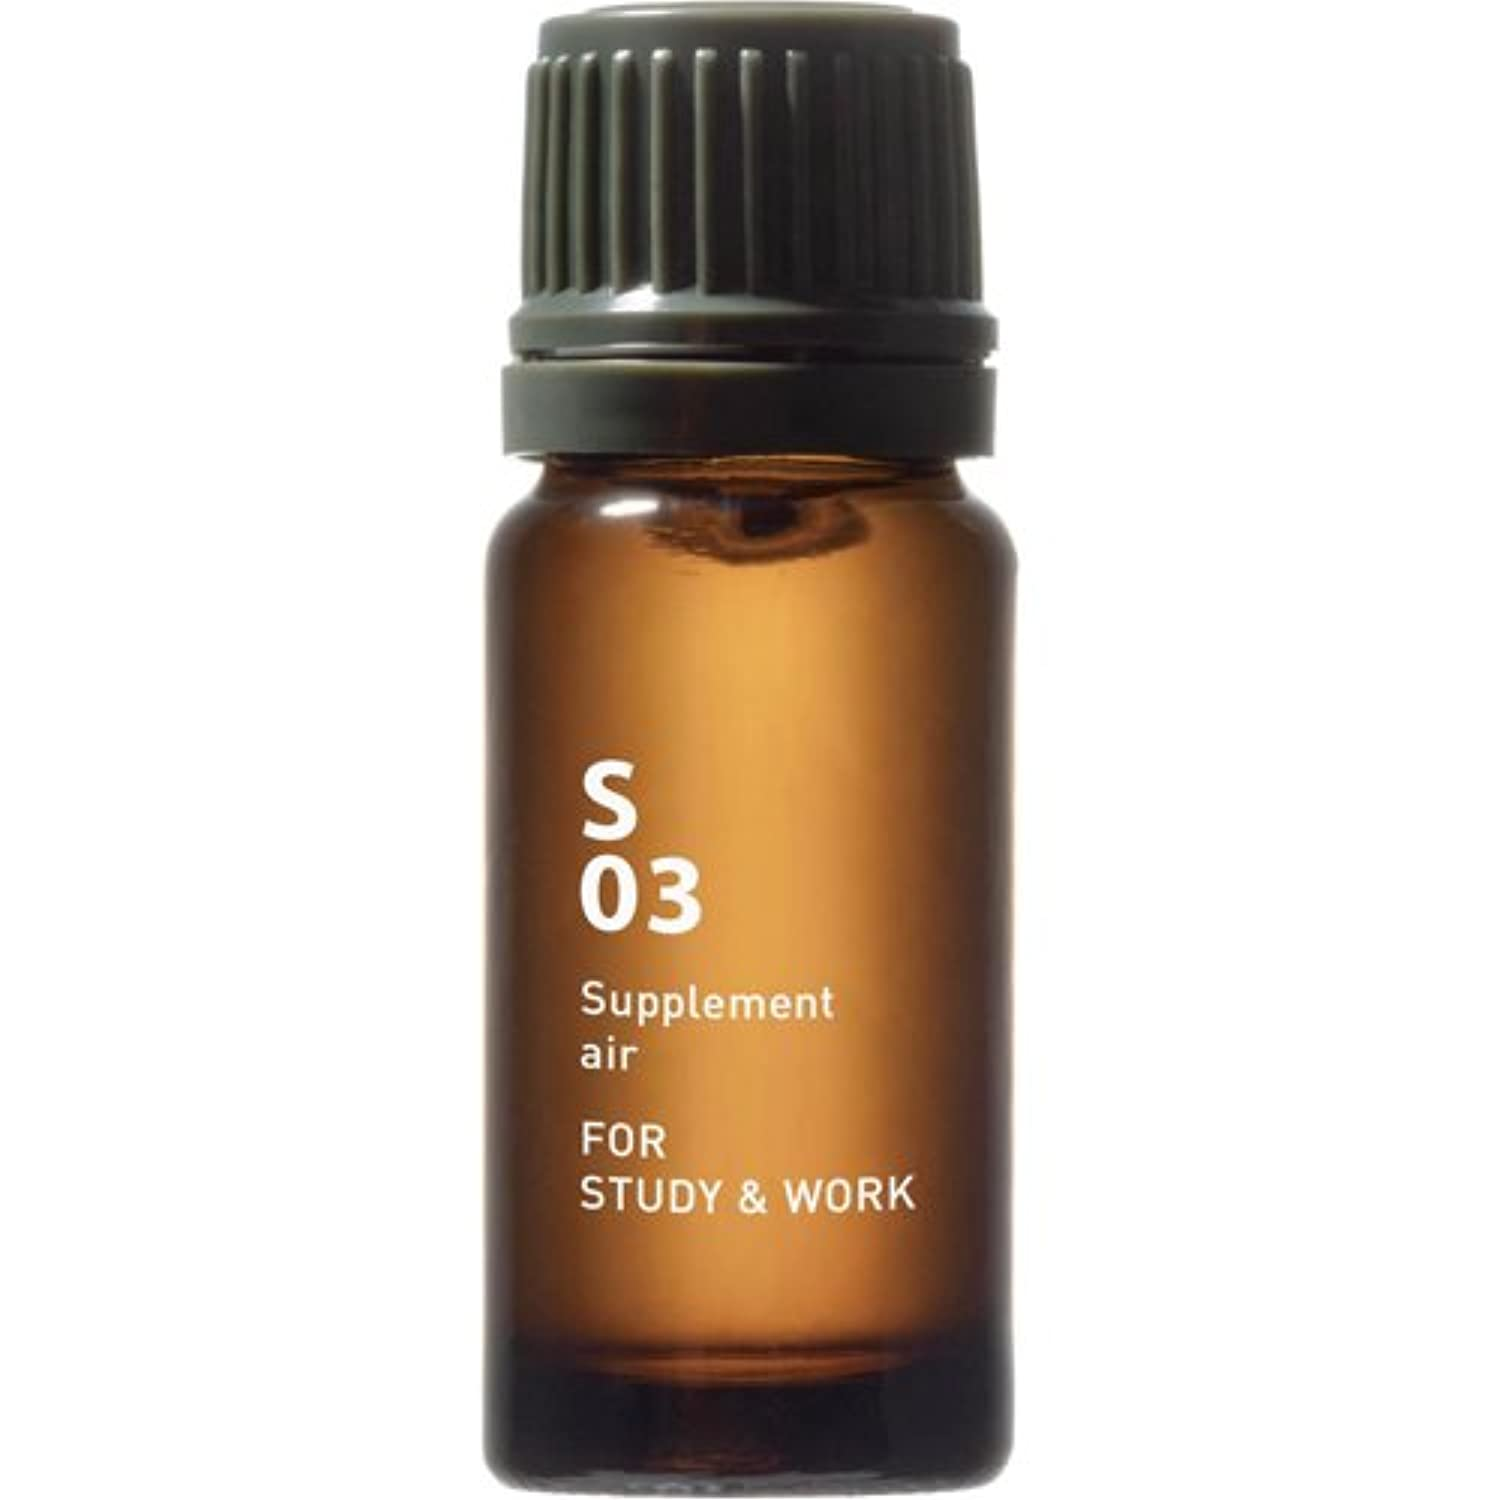 S03 FOR STUDY & WORK Supplement air 10ml